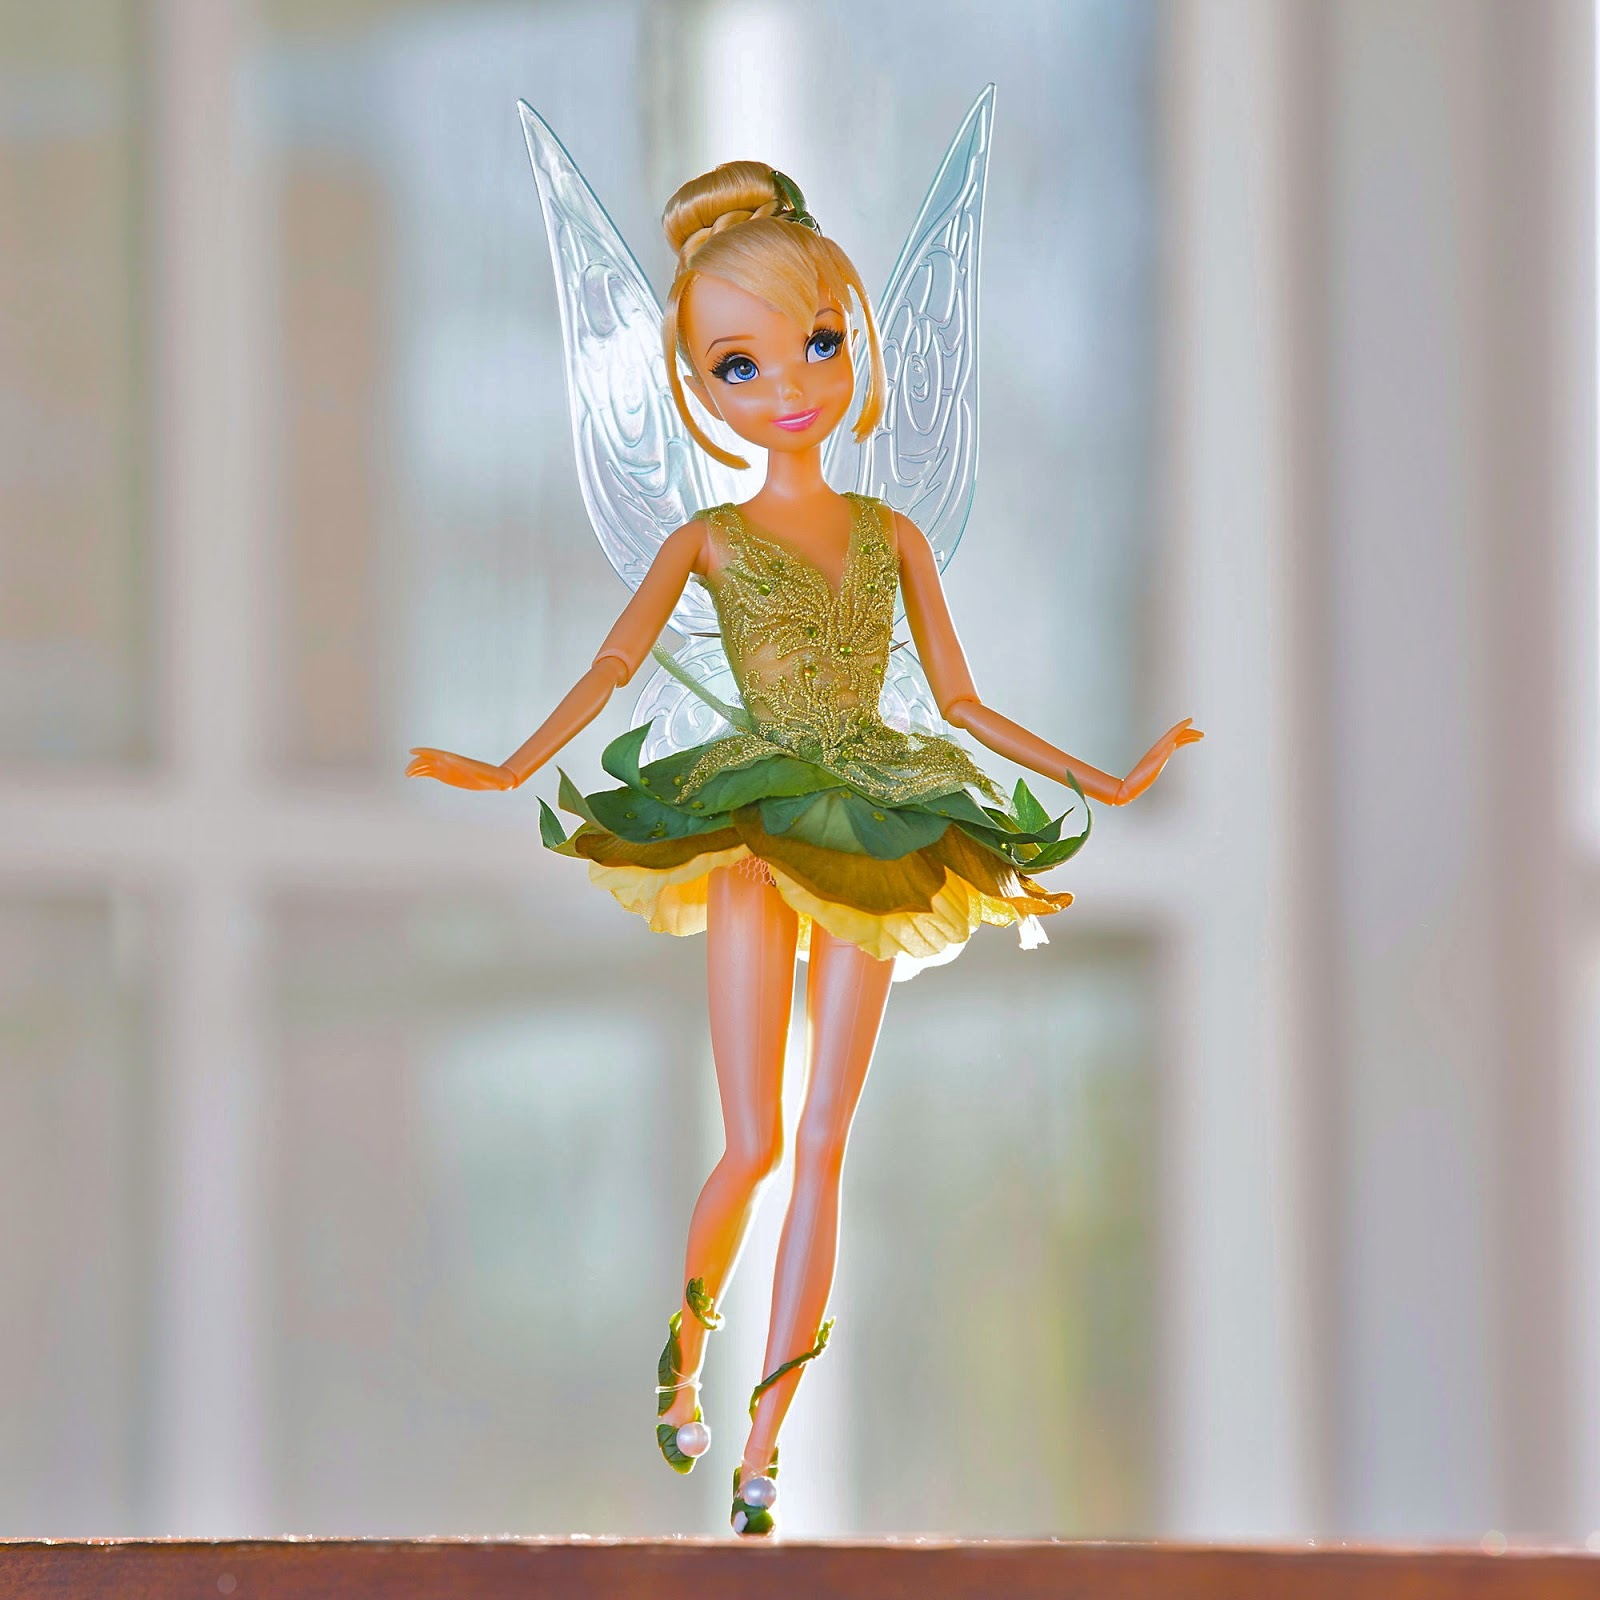 images collection of tinkerbell - photo #34